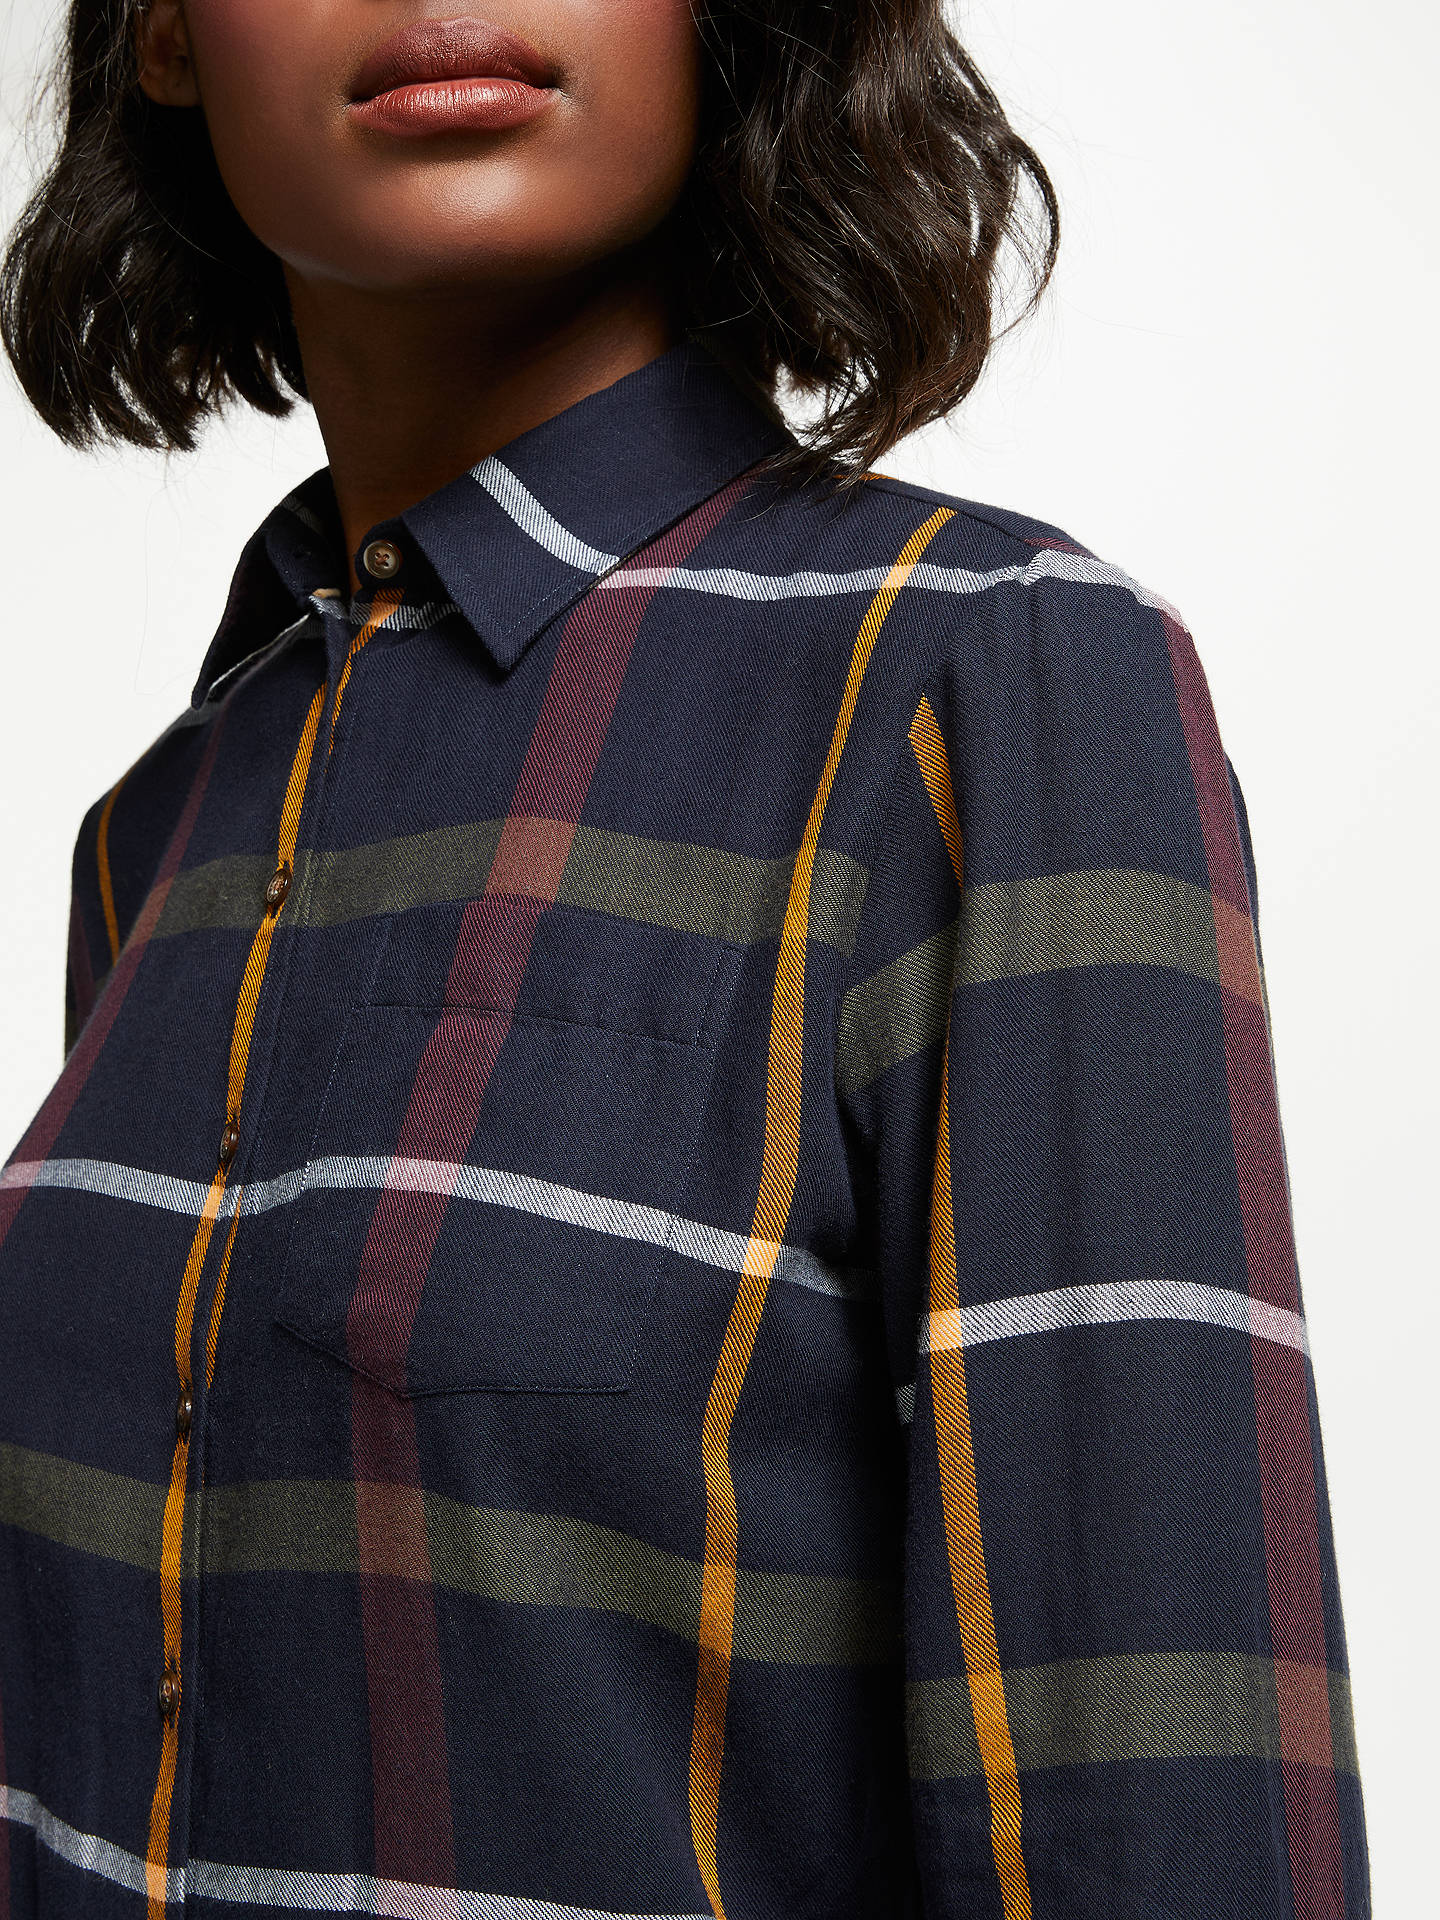 BuyBarbour Oxer Check Shirt, Navy Multi, 8 Online at johnlewis.com